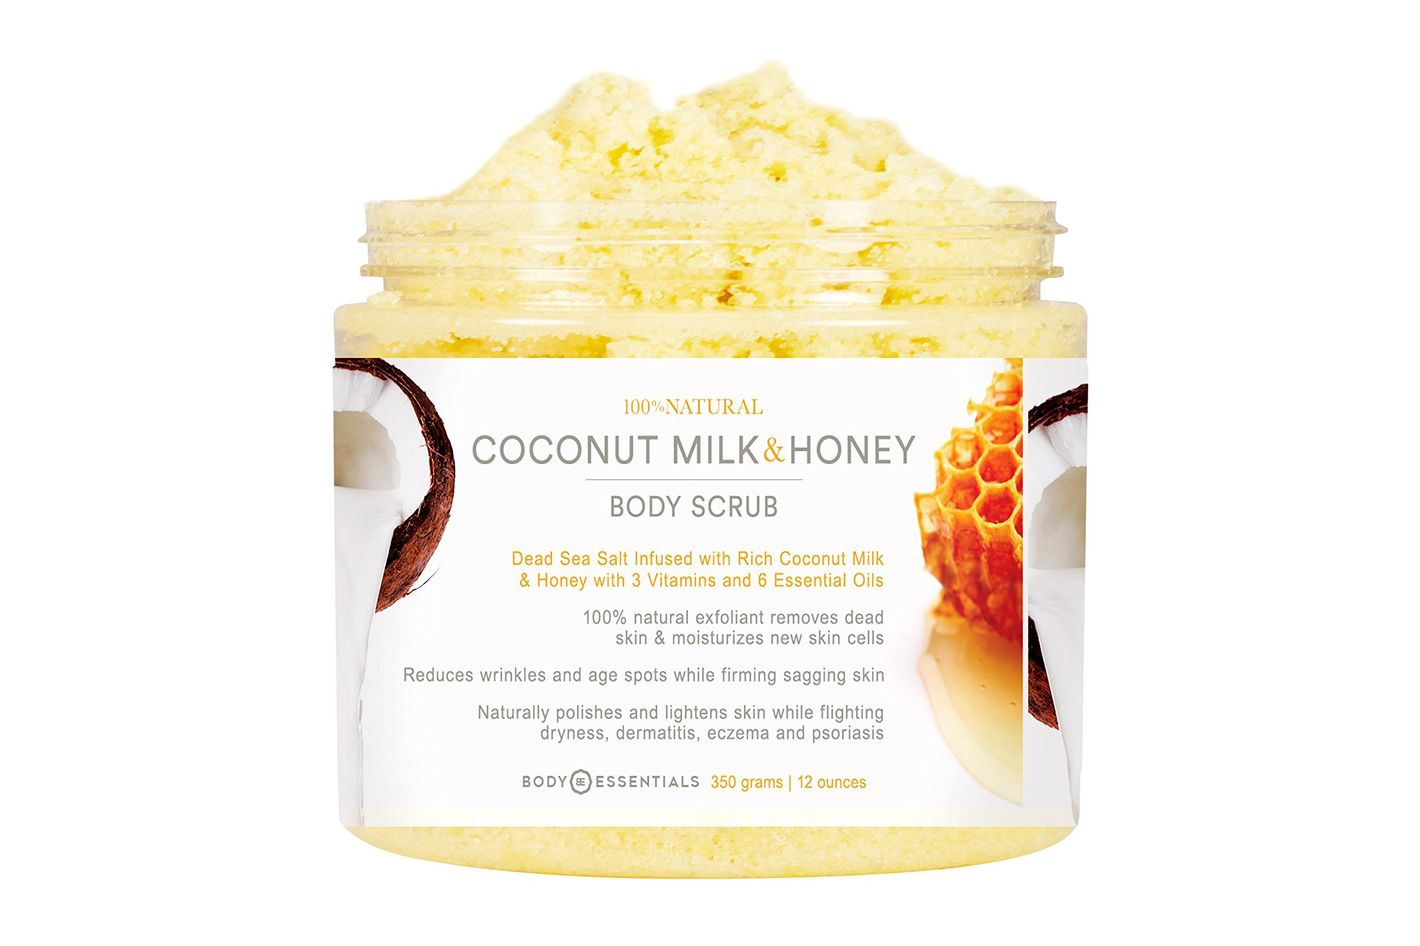 Body Essentials Coconut Milk & Honey Comb Body Scrub With Dead Sea Salt